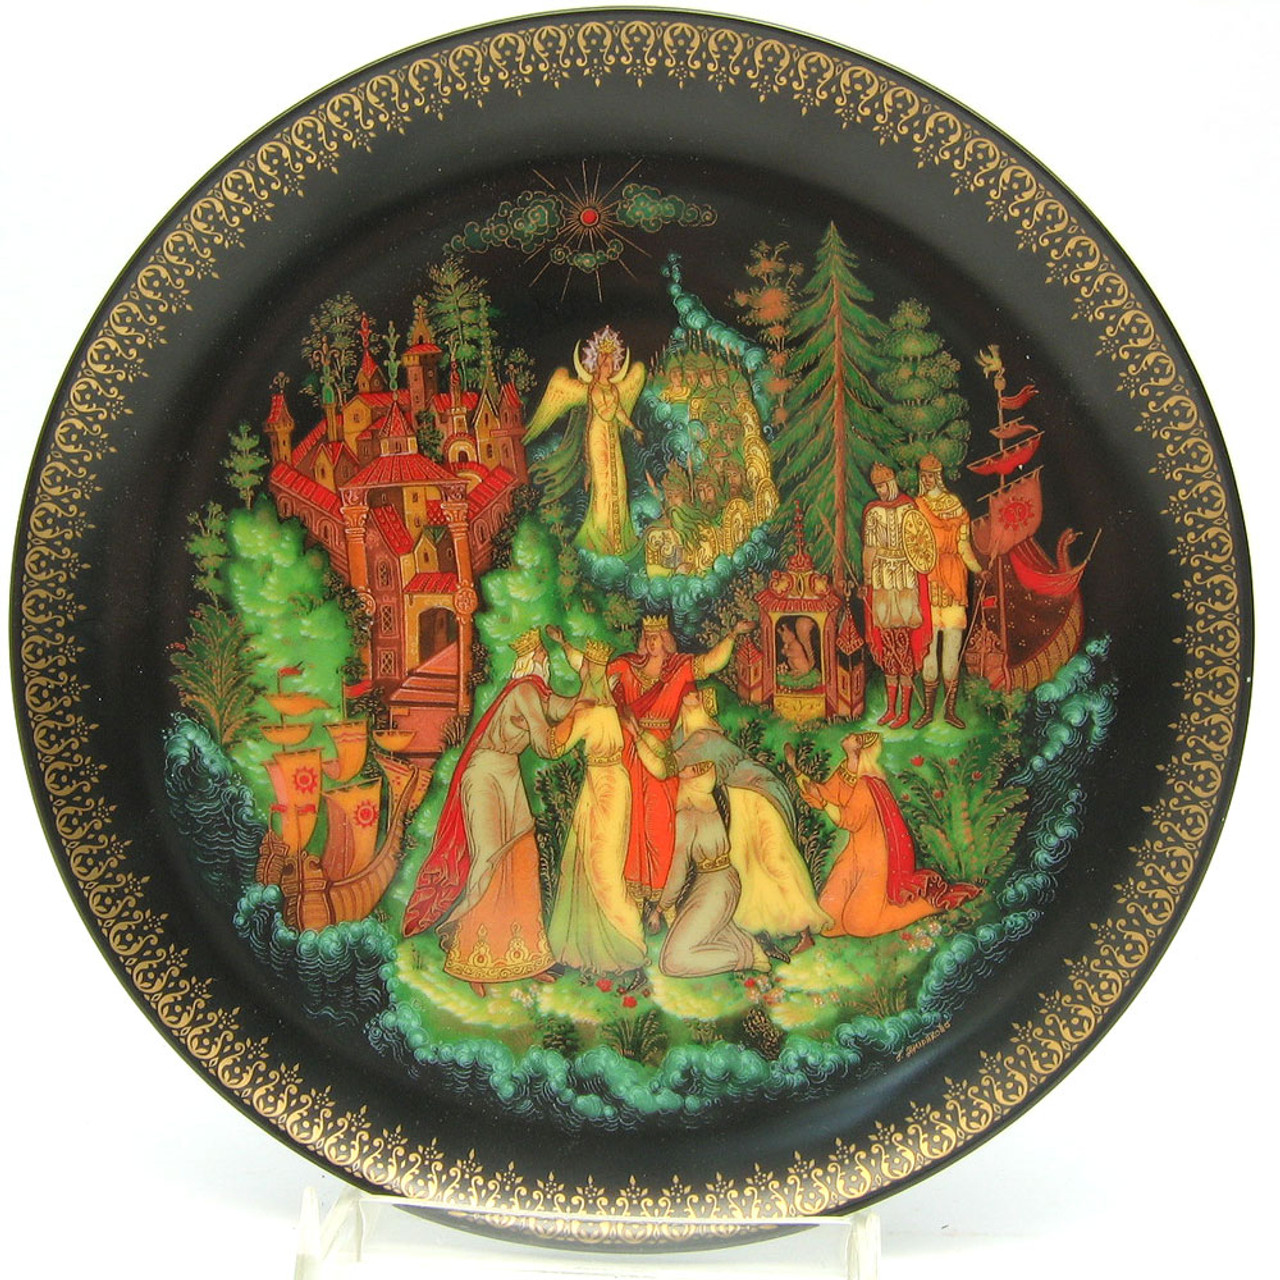 Tsar Saltan 6th plate in the RUSSIAN LEGENDS 1988 series